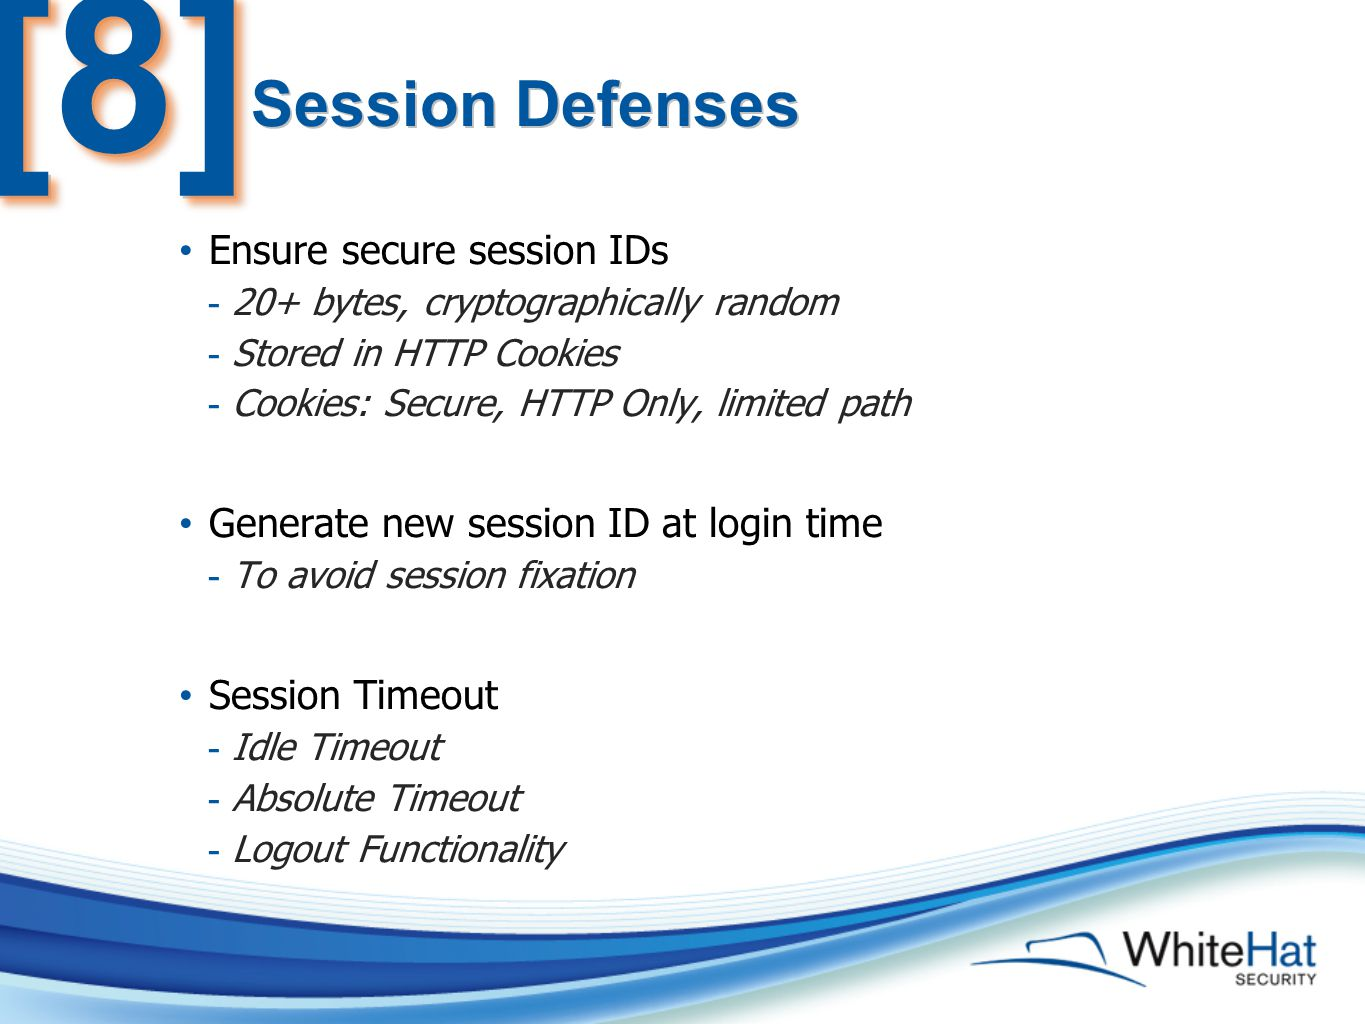 Ensure secure session IDs - 20+ bytes, cryptographically random - Stored in HTTP Cookies - Cookies: Secure, HTTP Only, limited path Generate new session ID at login time - To avoid session fixation Session Timeout - Idle Timeout - Absolute Timeout - Logout Functionality Session Defenses [8][8]